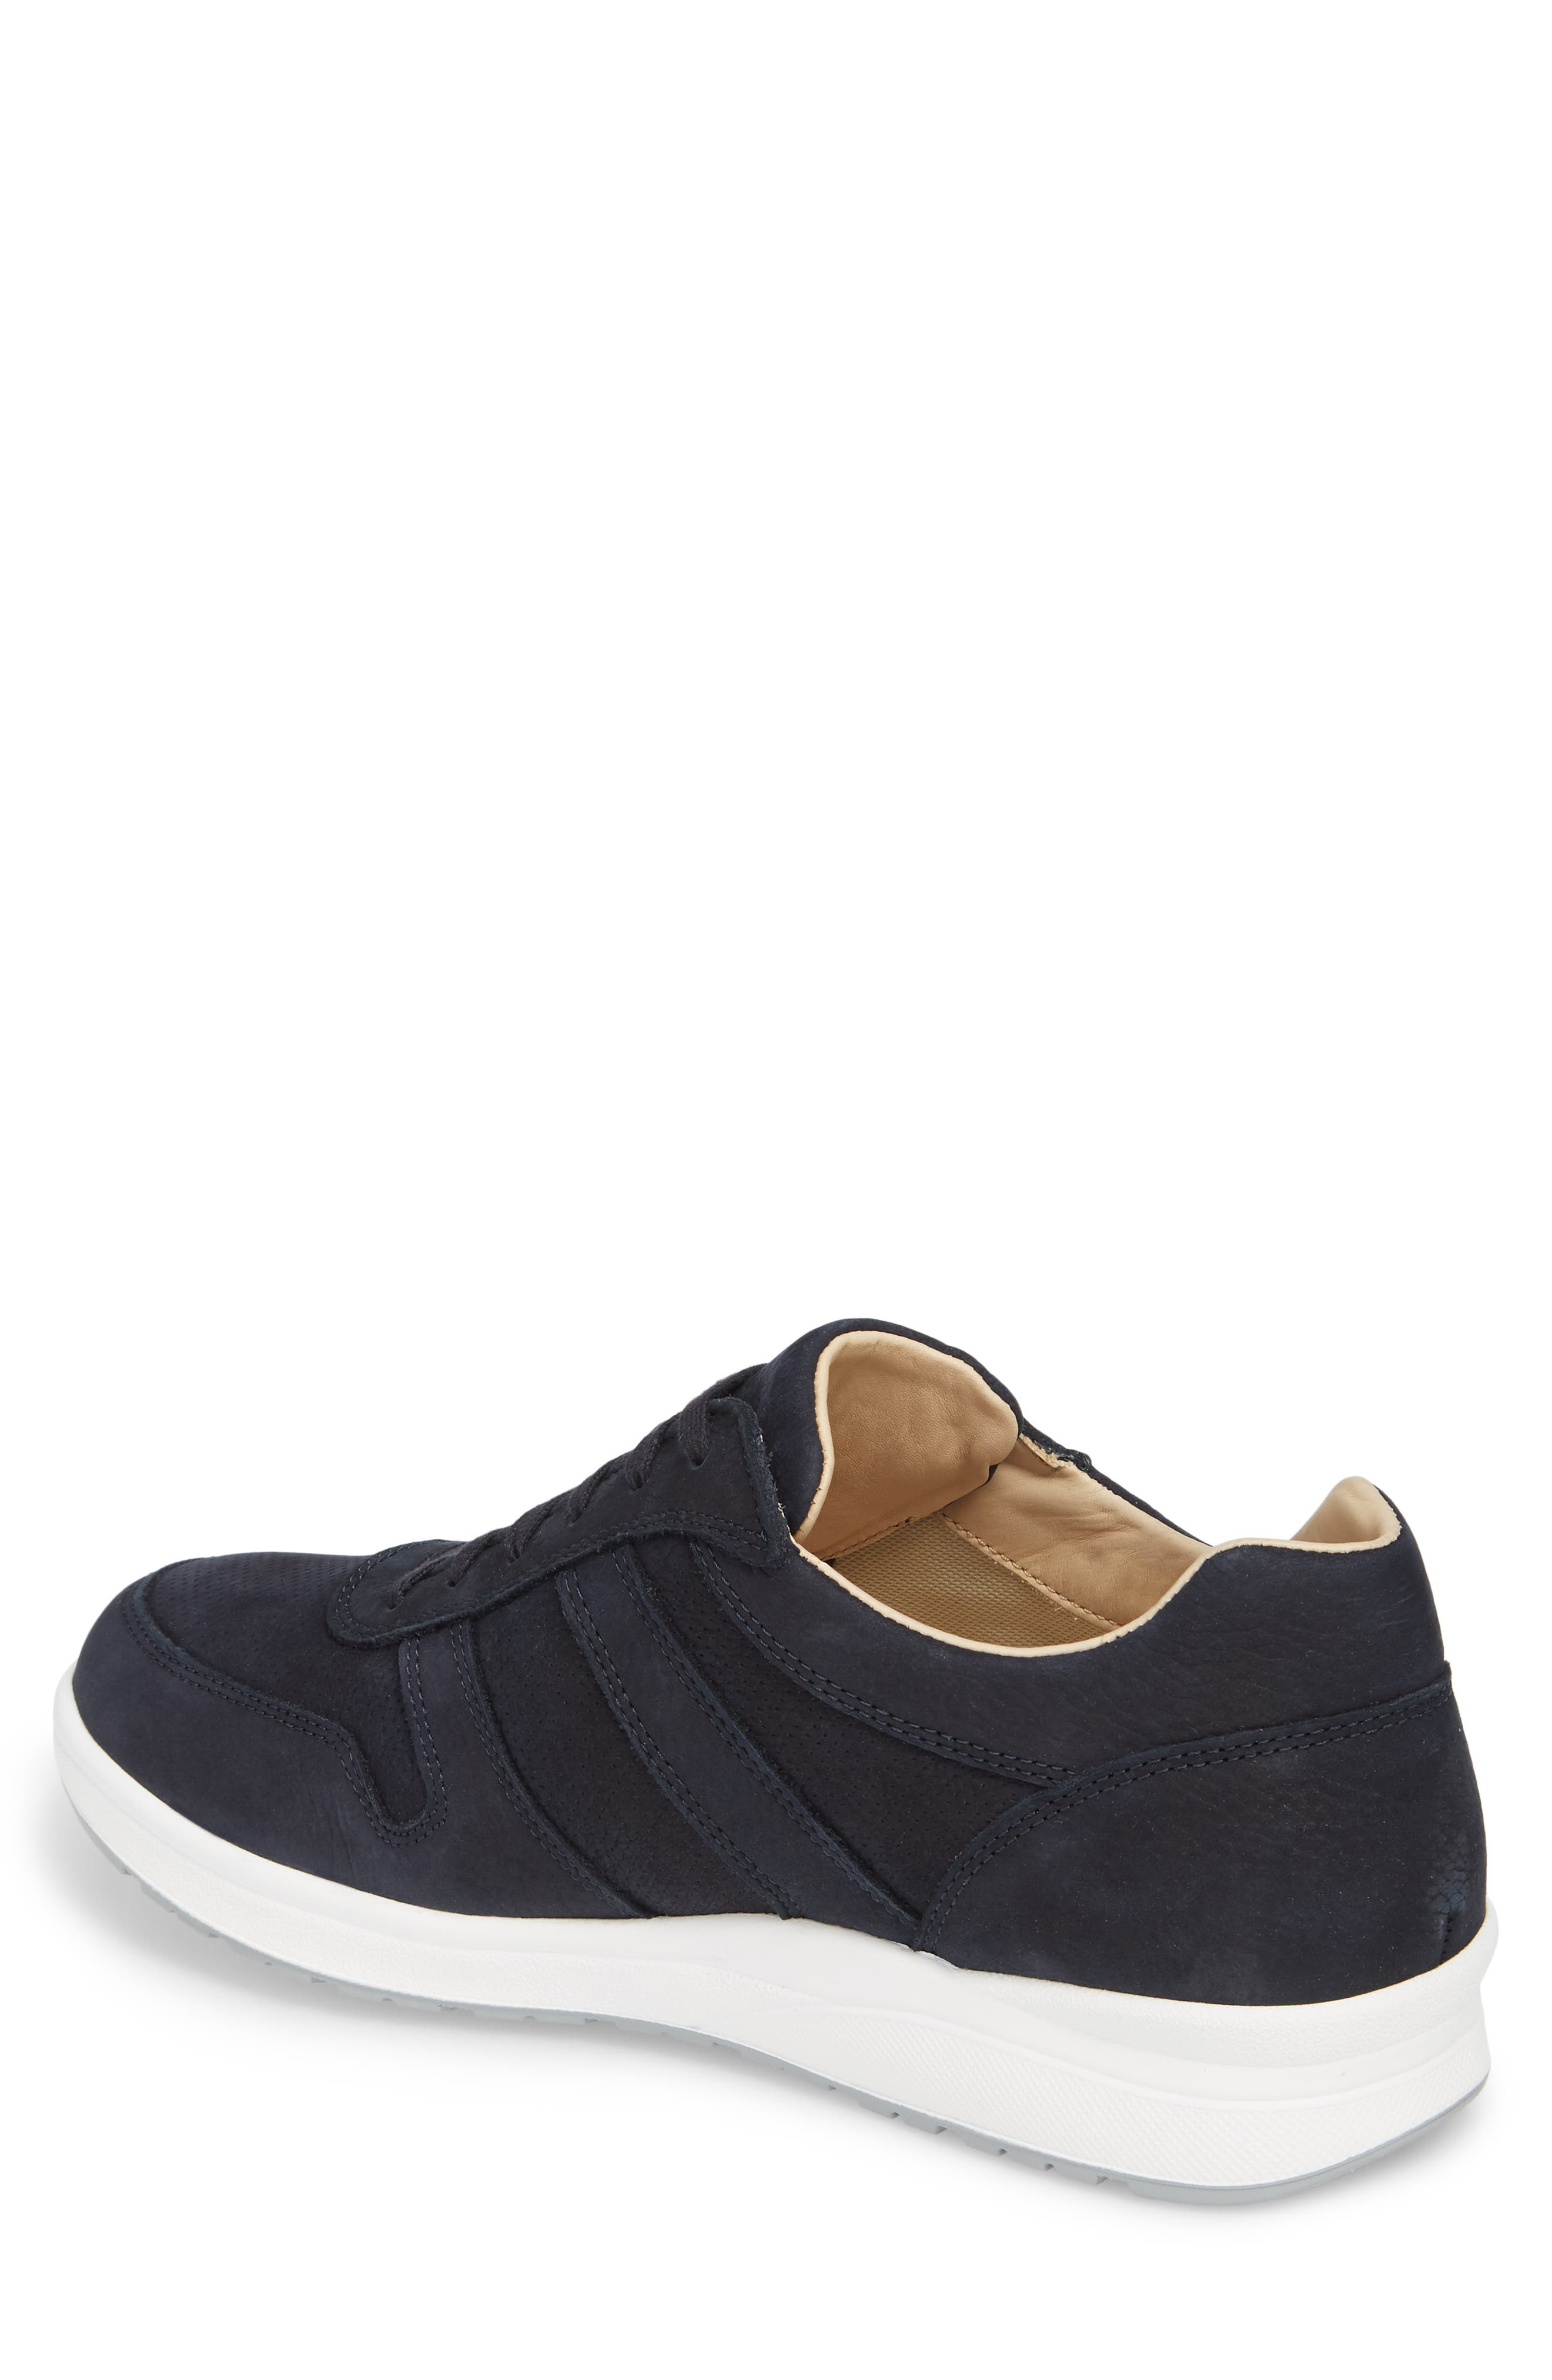 Vito Perforated Sneaker,                             Alternate thumbnail 2, color,                             NAVY